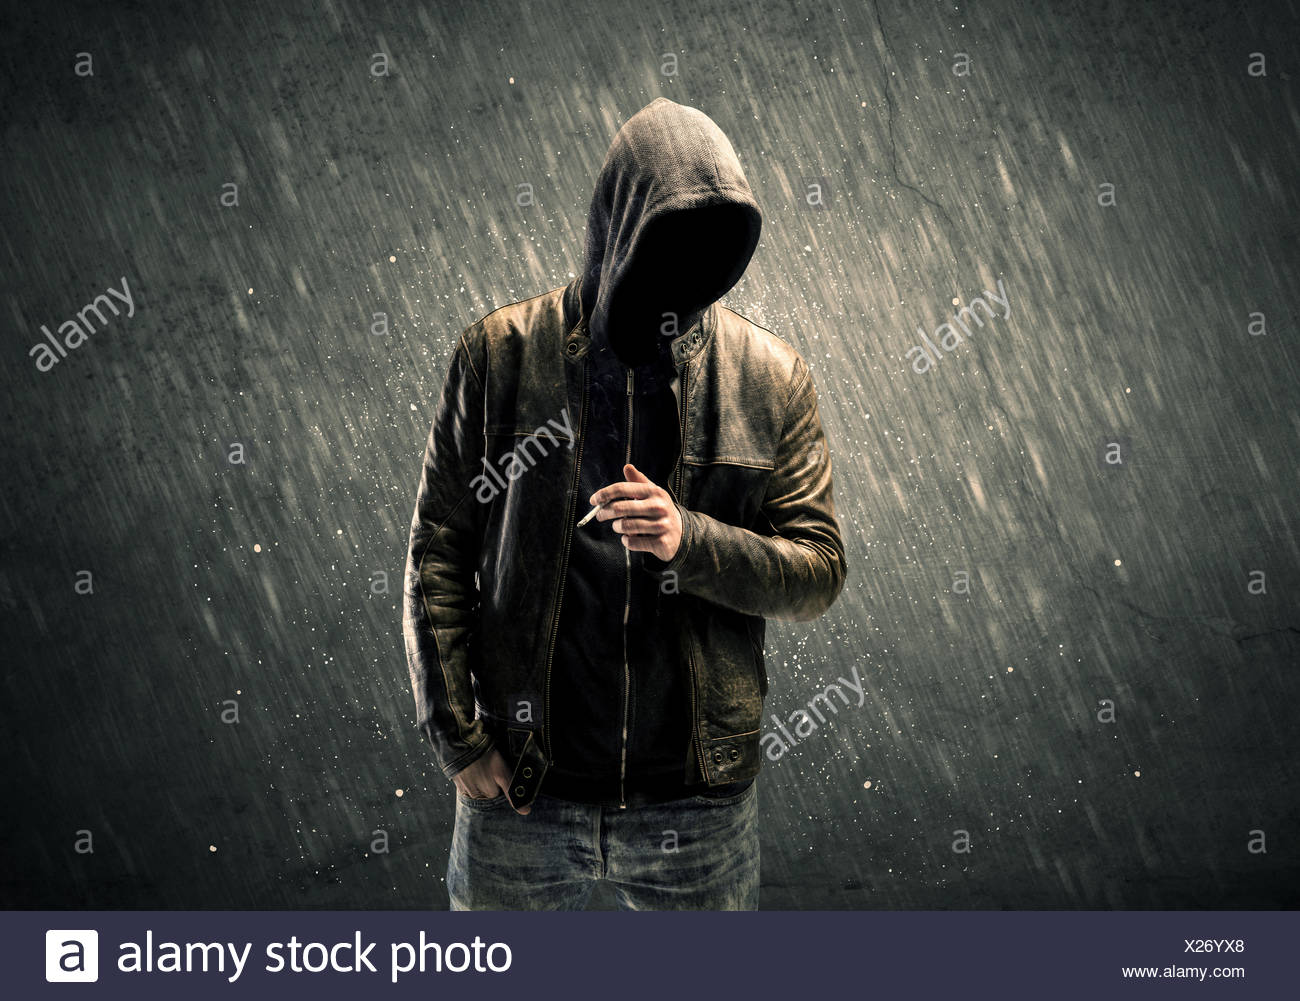 Spooky faceless guy standing in hoodie Stock Photo  276748816 - Alamy 069eb833c